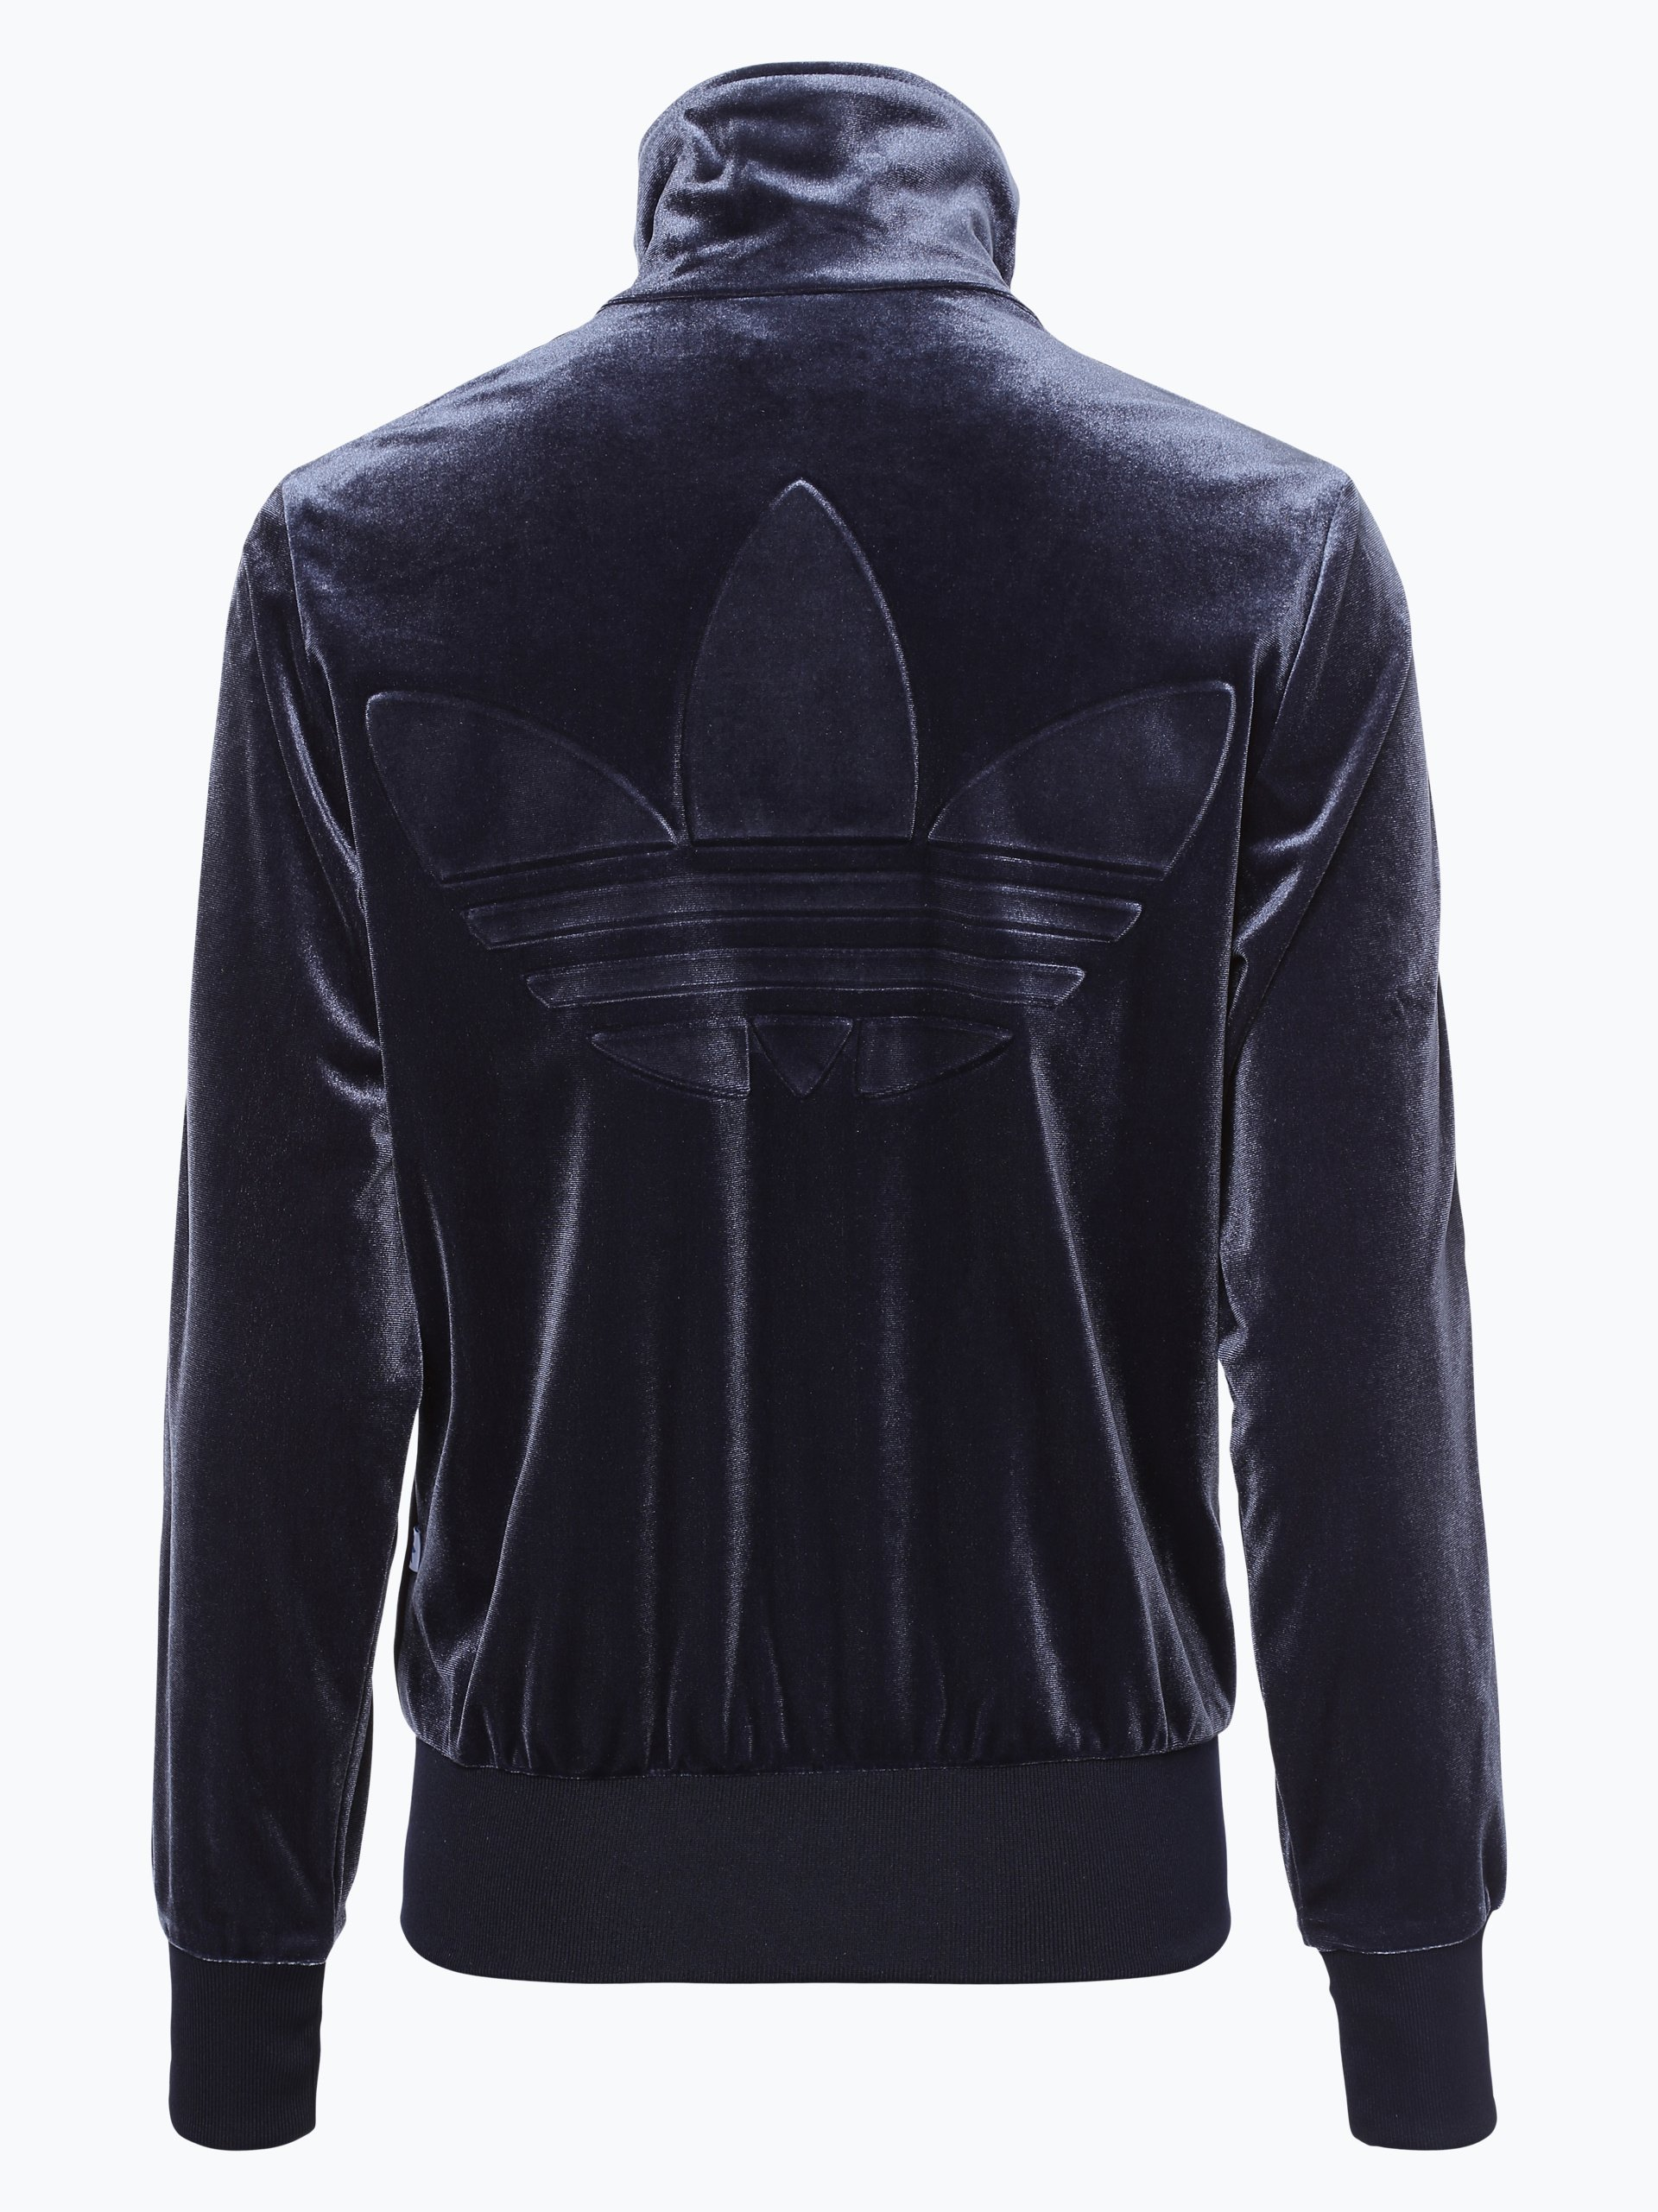 adidas originals damen sweatjacke marine uni online kaufen vangraaf com. Black Bedroom Furniture Sets. Home Design Ideas